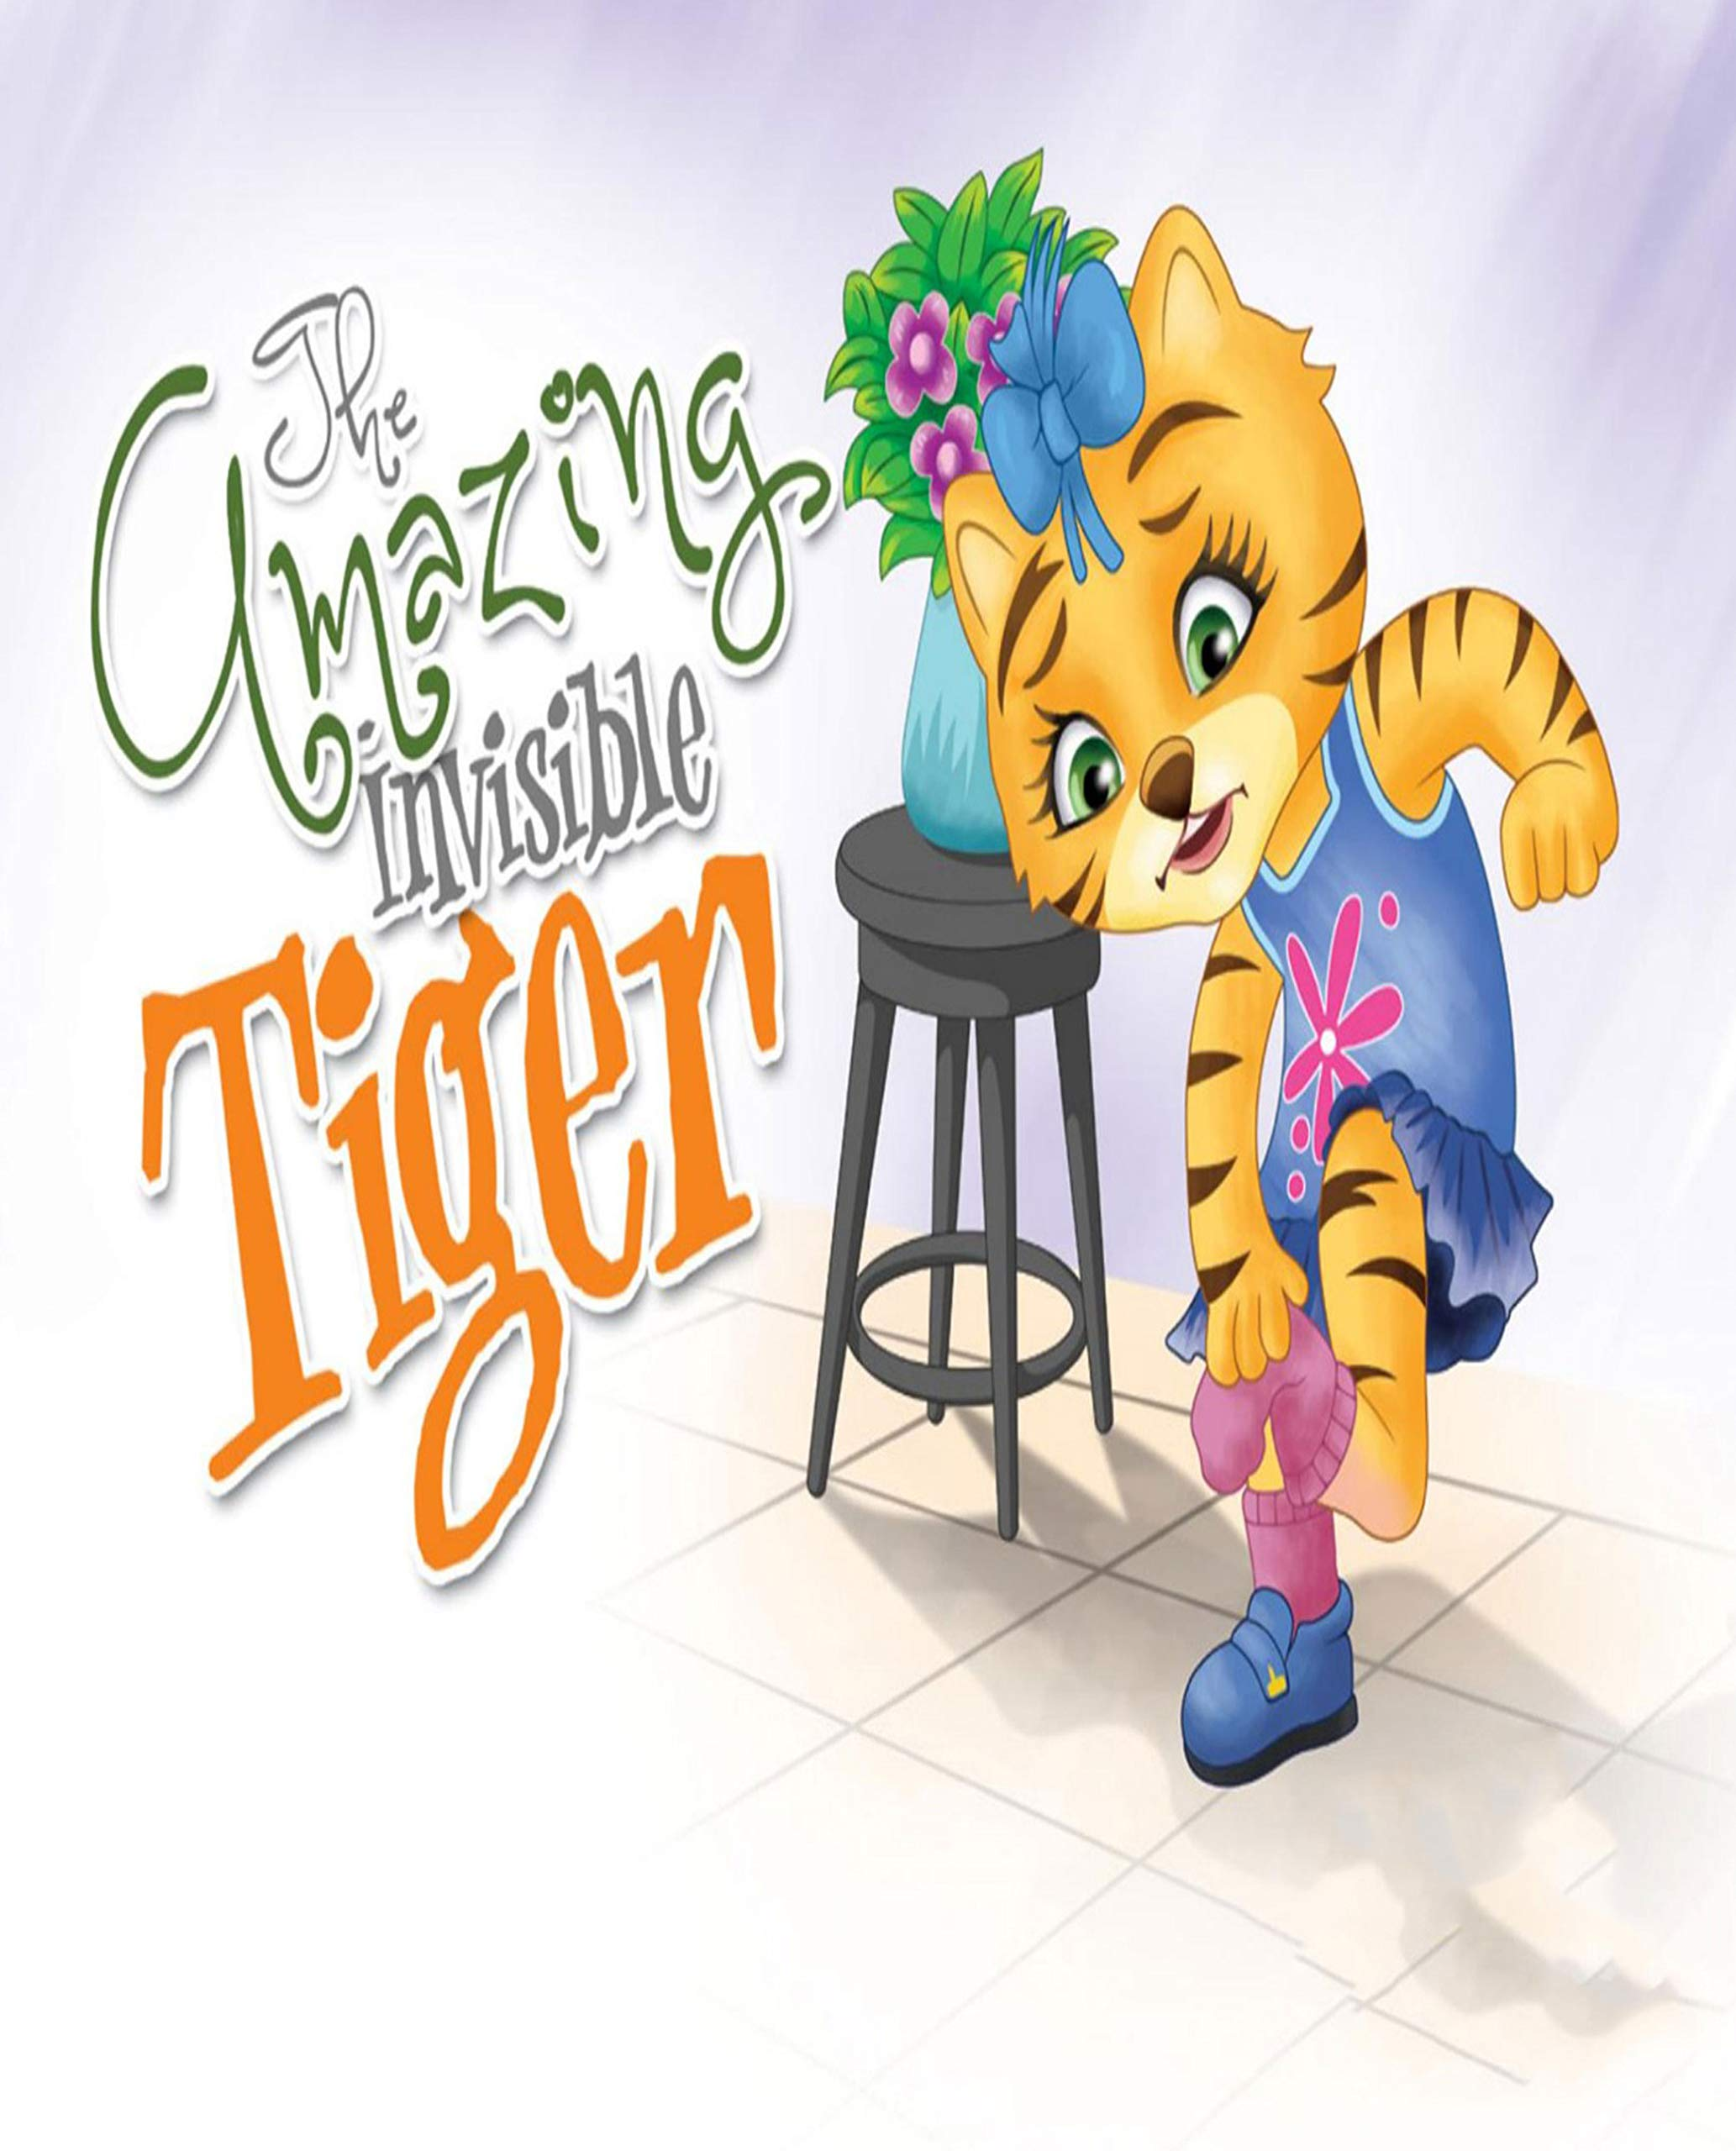 THE AMAZING INVISIBLE TIGER Free Childrens Book By Monkey Pen: Recommended for classic children's picture books